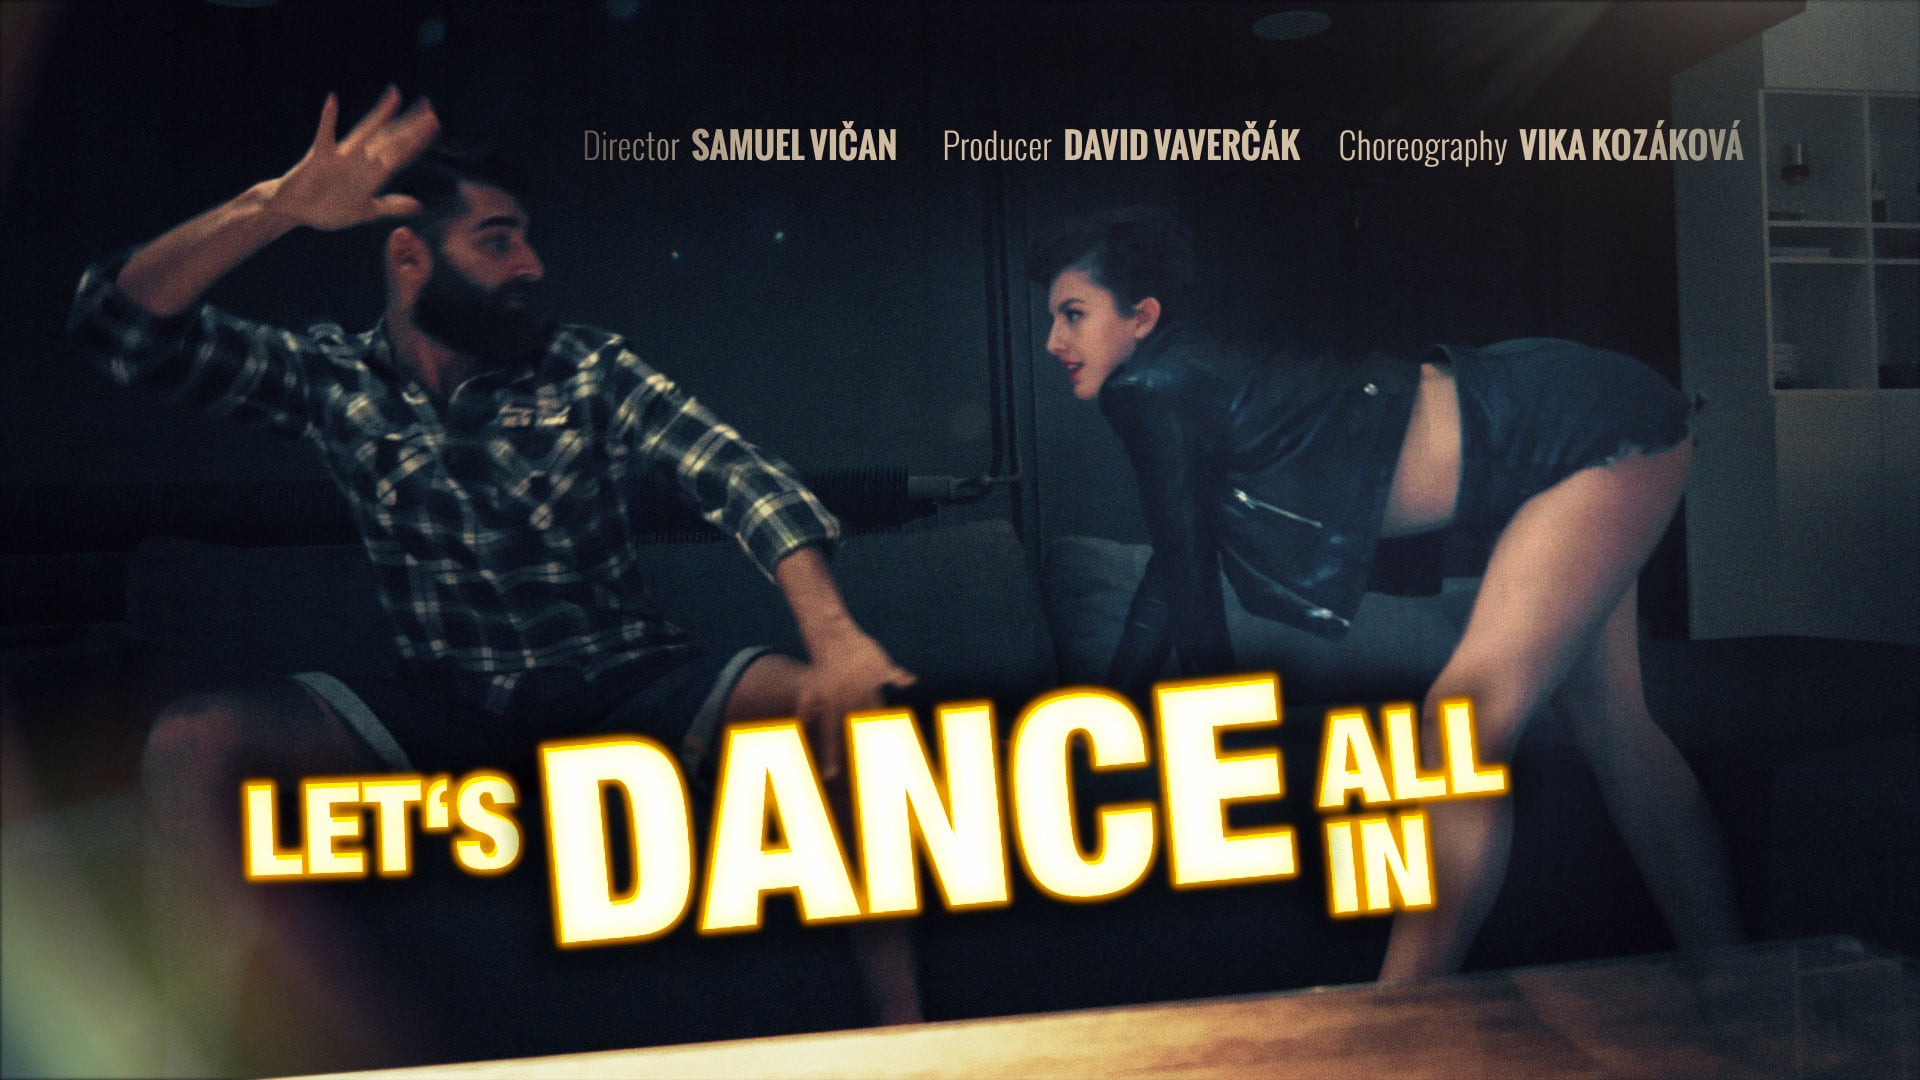 Let's Dance All In (Step Up 5) - Trailer 2014